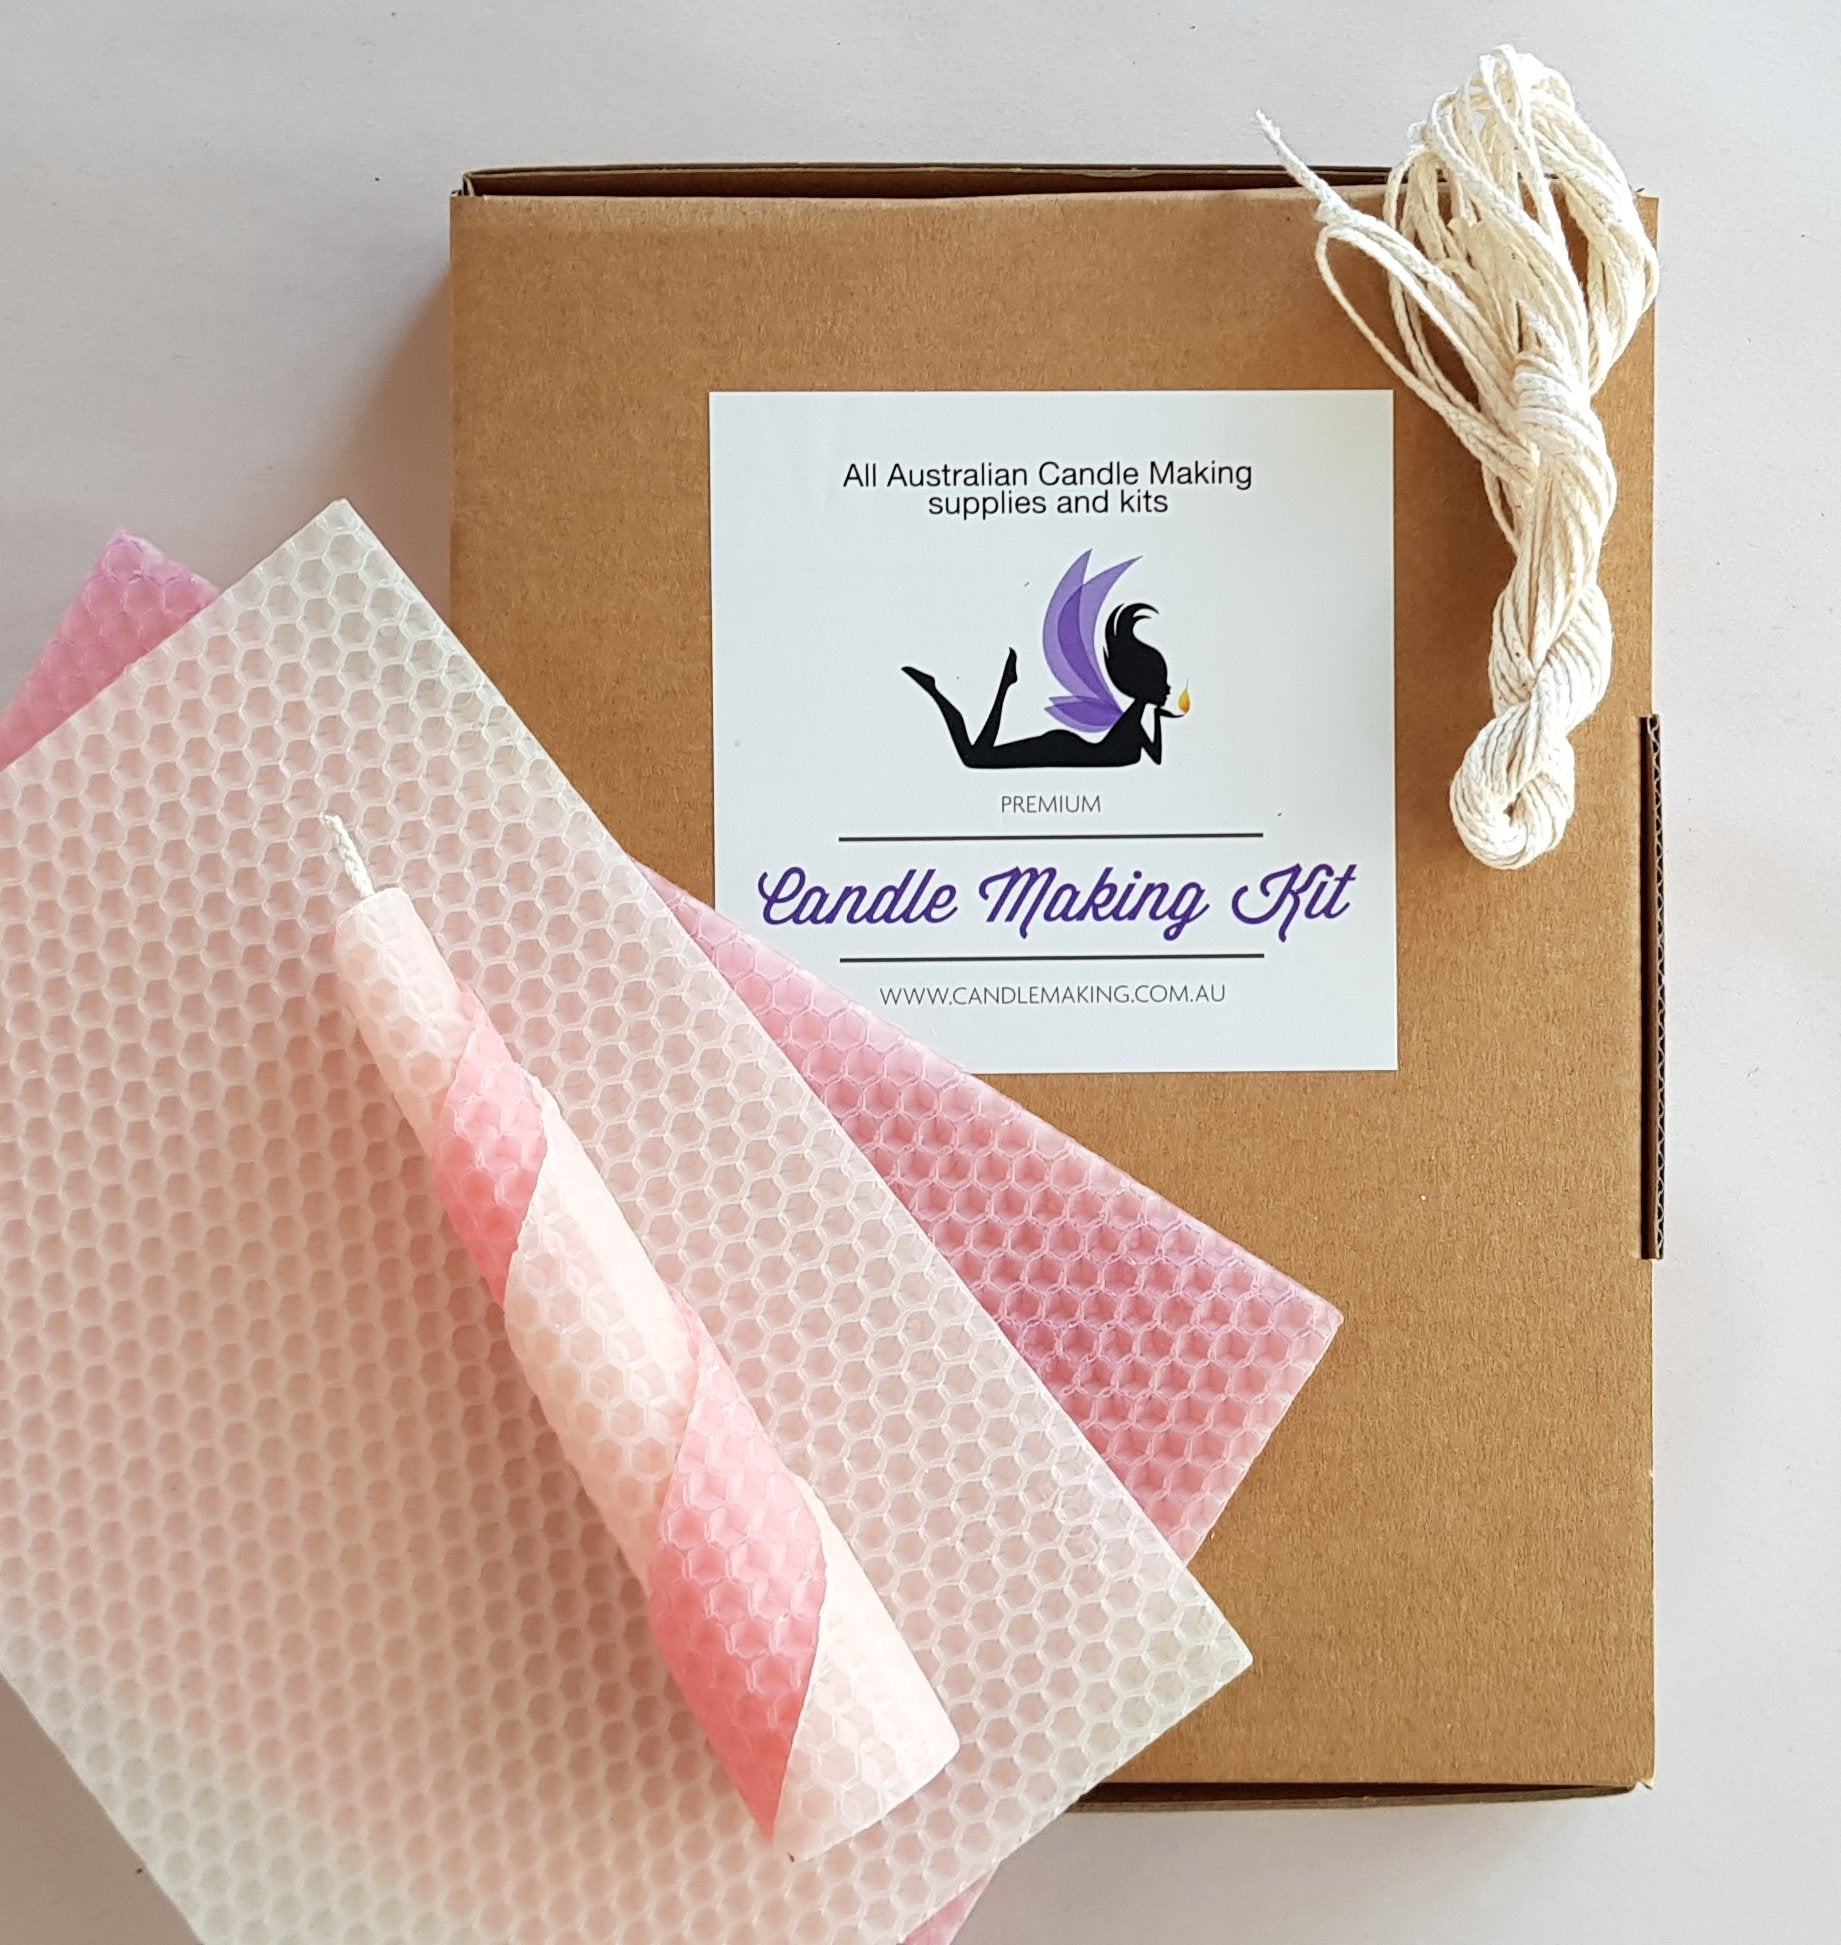 Beeswax Candle Making Kit - 12 pink/calico sheets